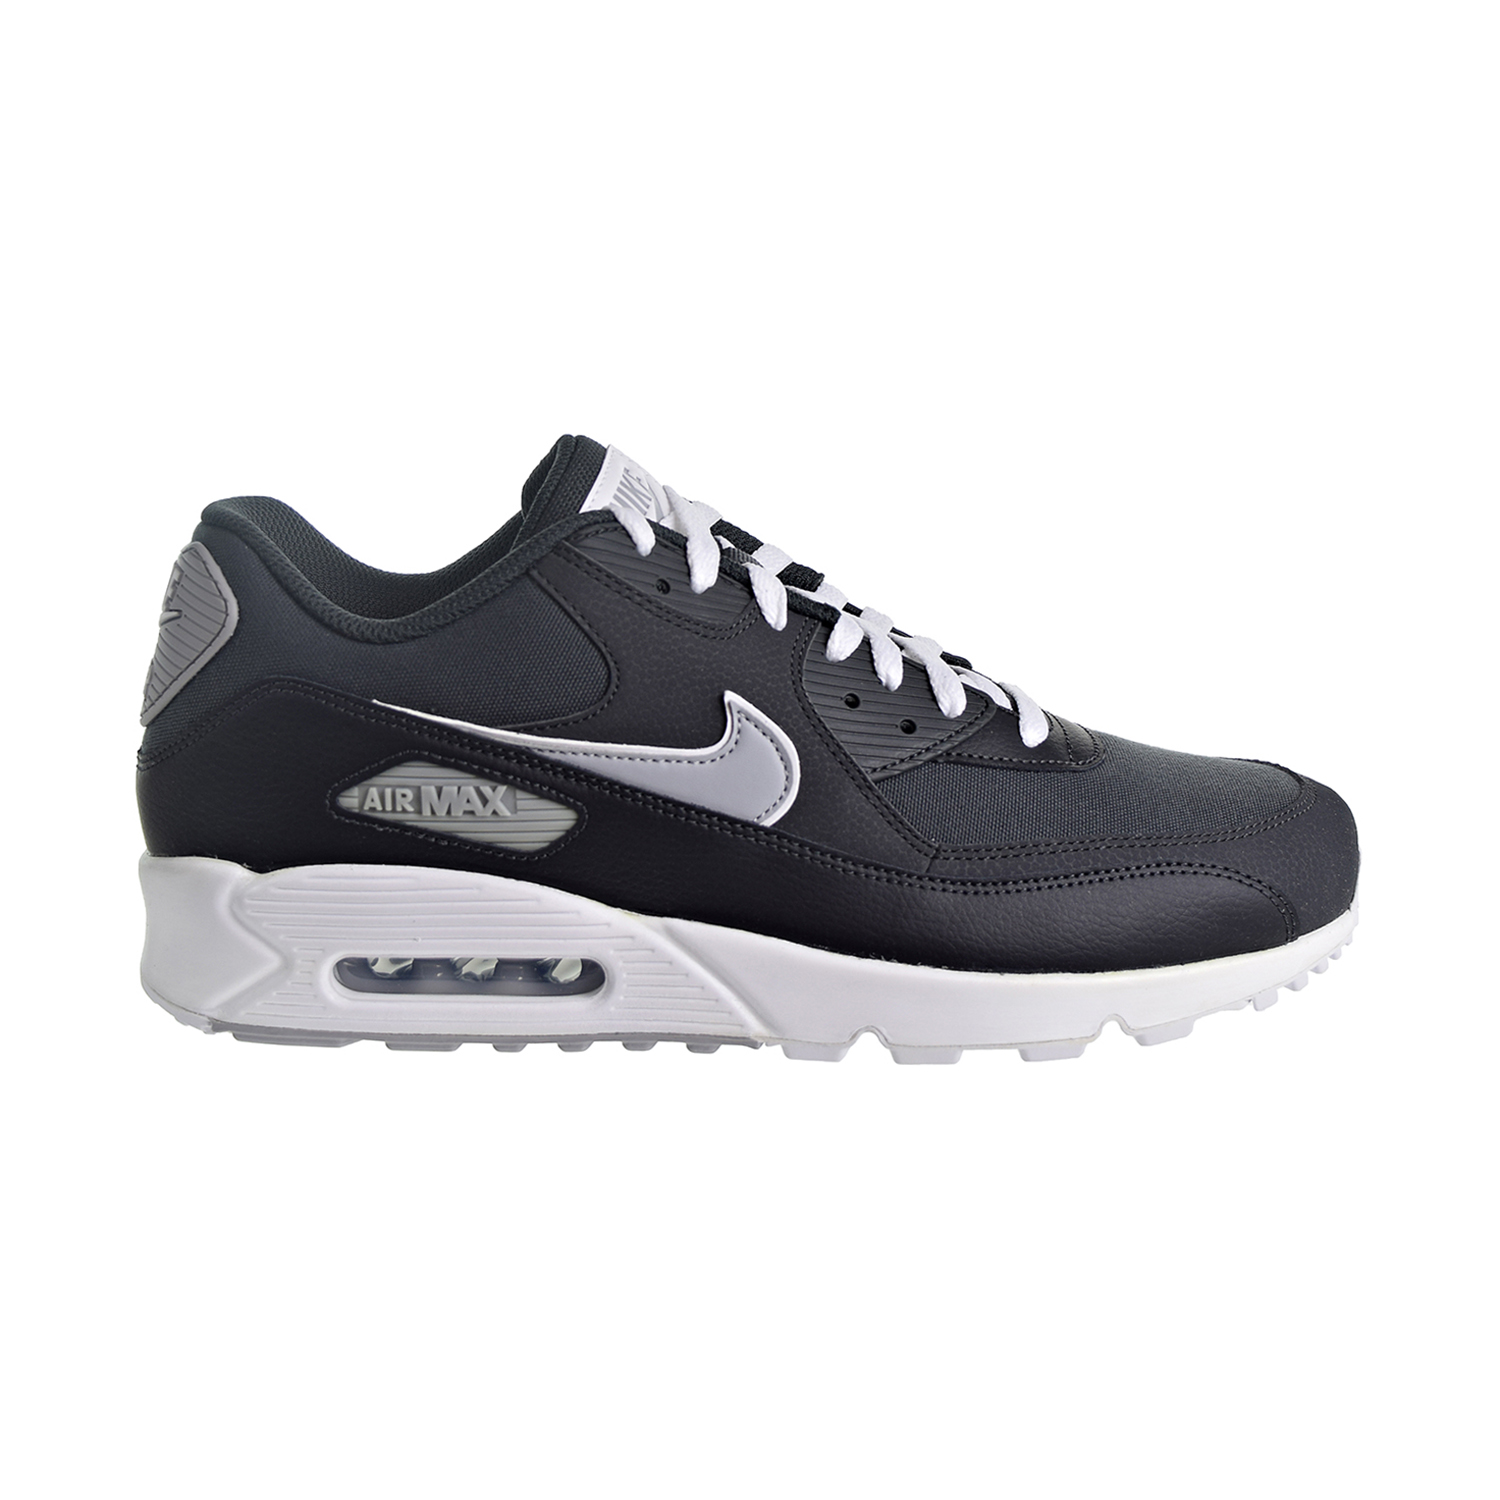 Details about Nike Air Max 90 Essential Men's Shoes AnthraciteWolf GreyWhite AJ1285 005